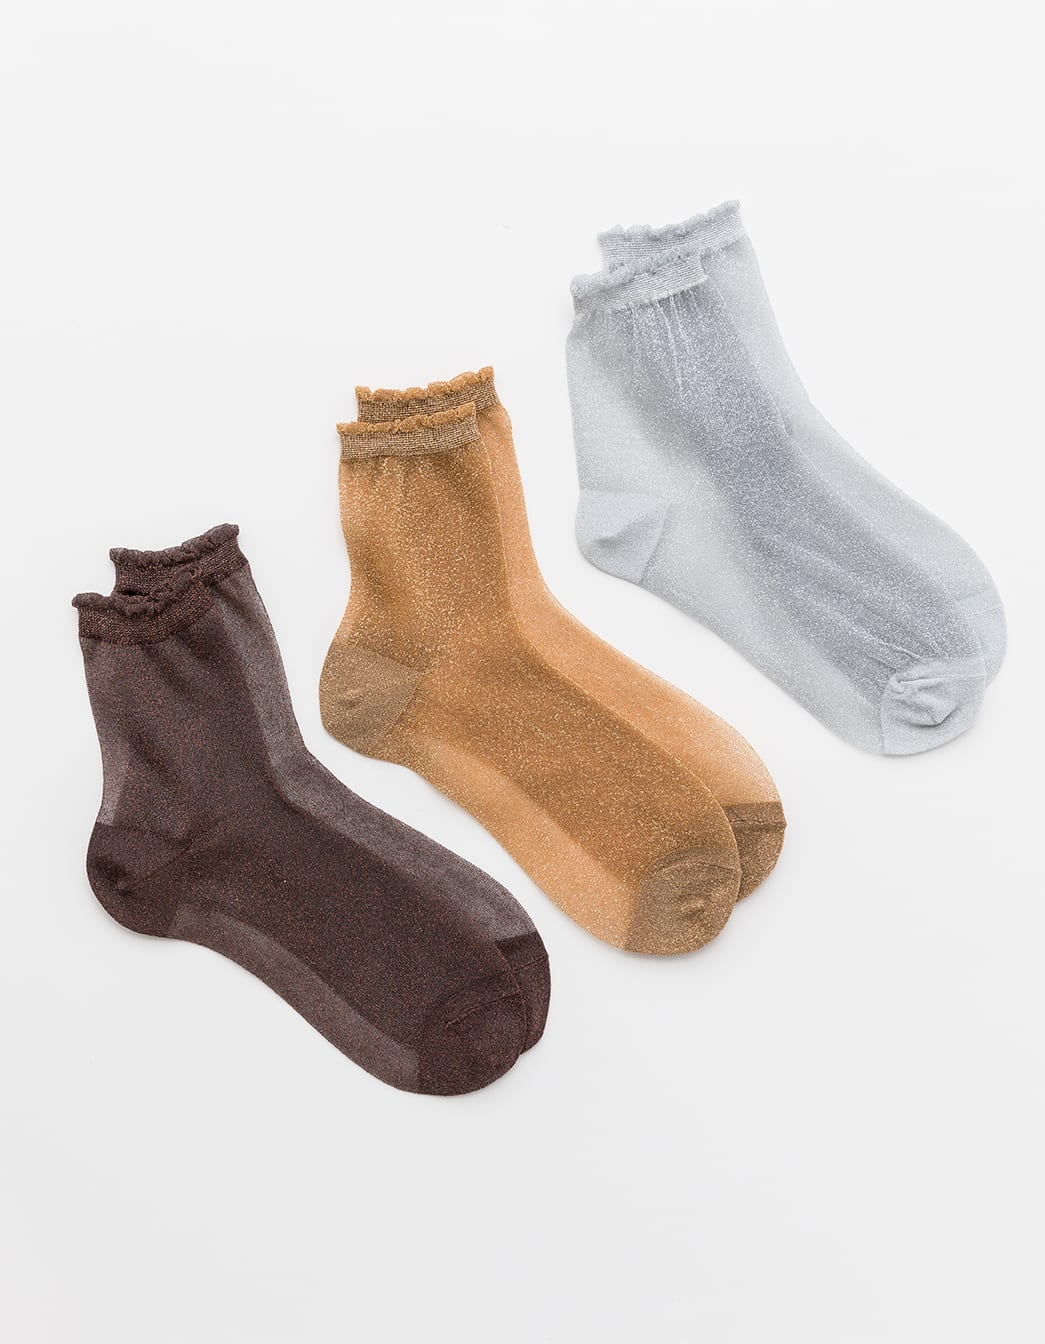 Sheer Sparkle Socks Set of 3 - Gold, Silver & Rust